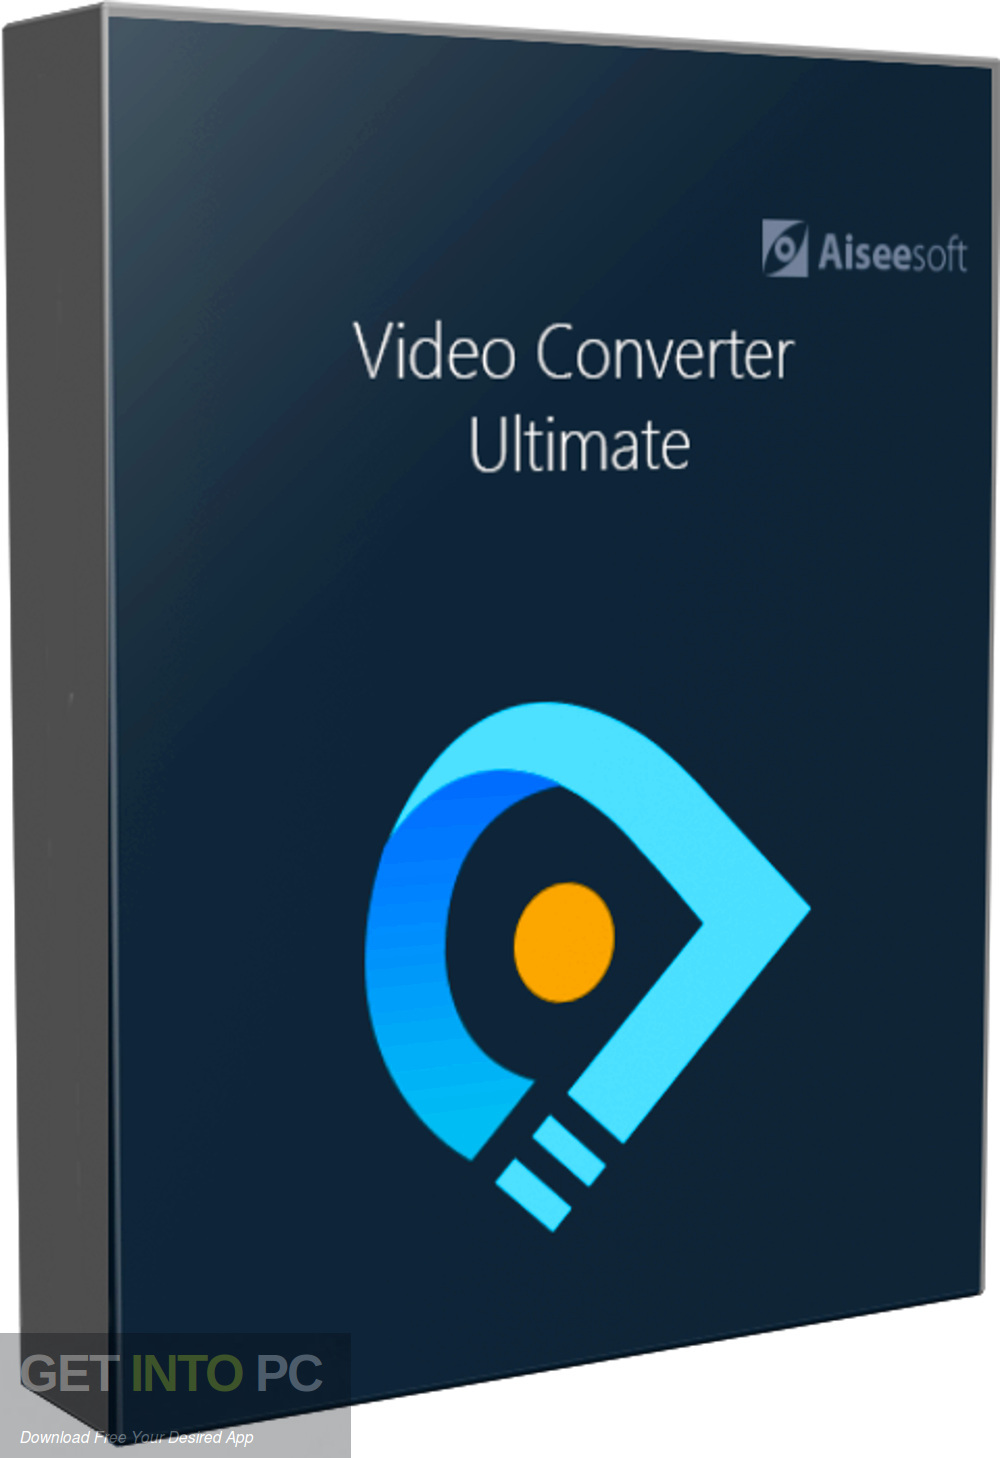 Aiseesoft Video Converter Ultimate 10.0.18 with Crack Free Download